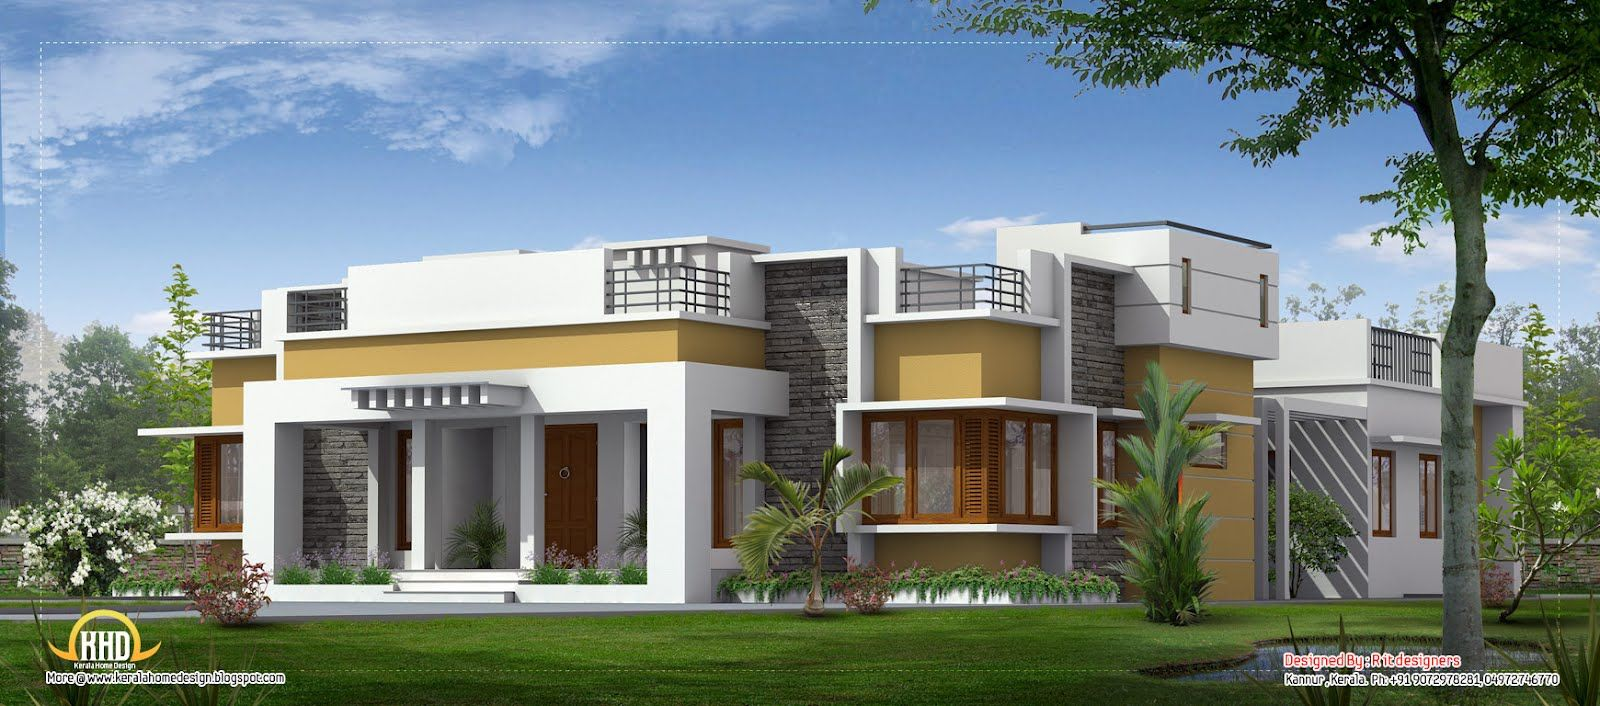 Single level designer home single floor house plans